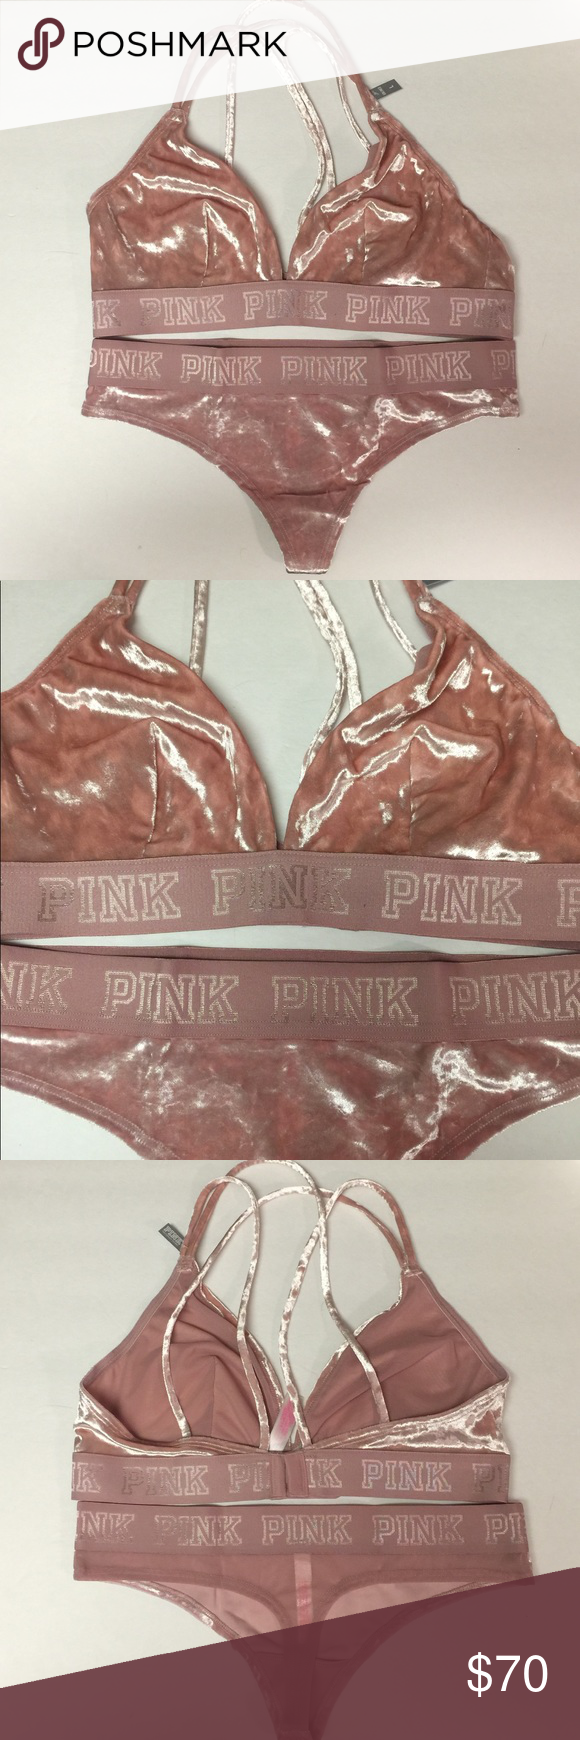 218d640499427e VS PINK Velvet Bralette Thong Set Perfectly Pink New with tags Victoria s  Secret PINK Velvet Bralette